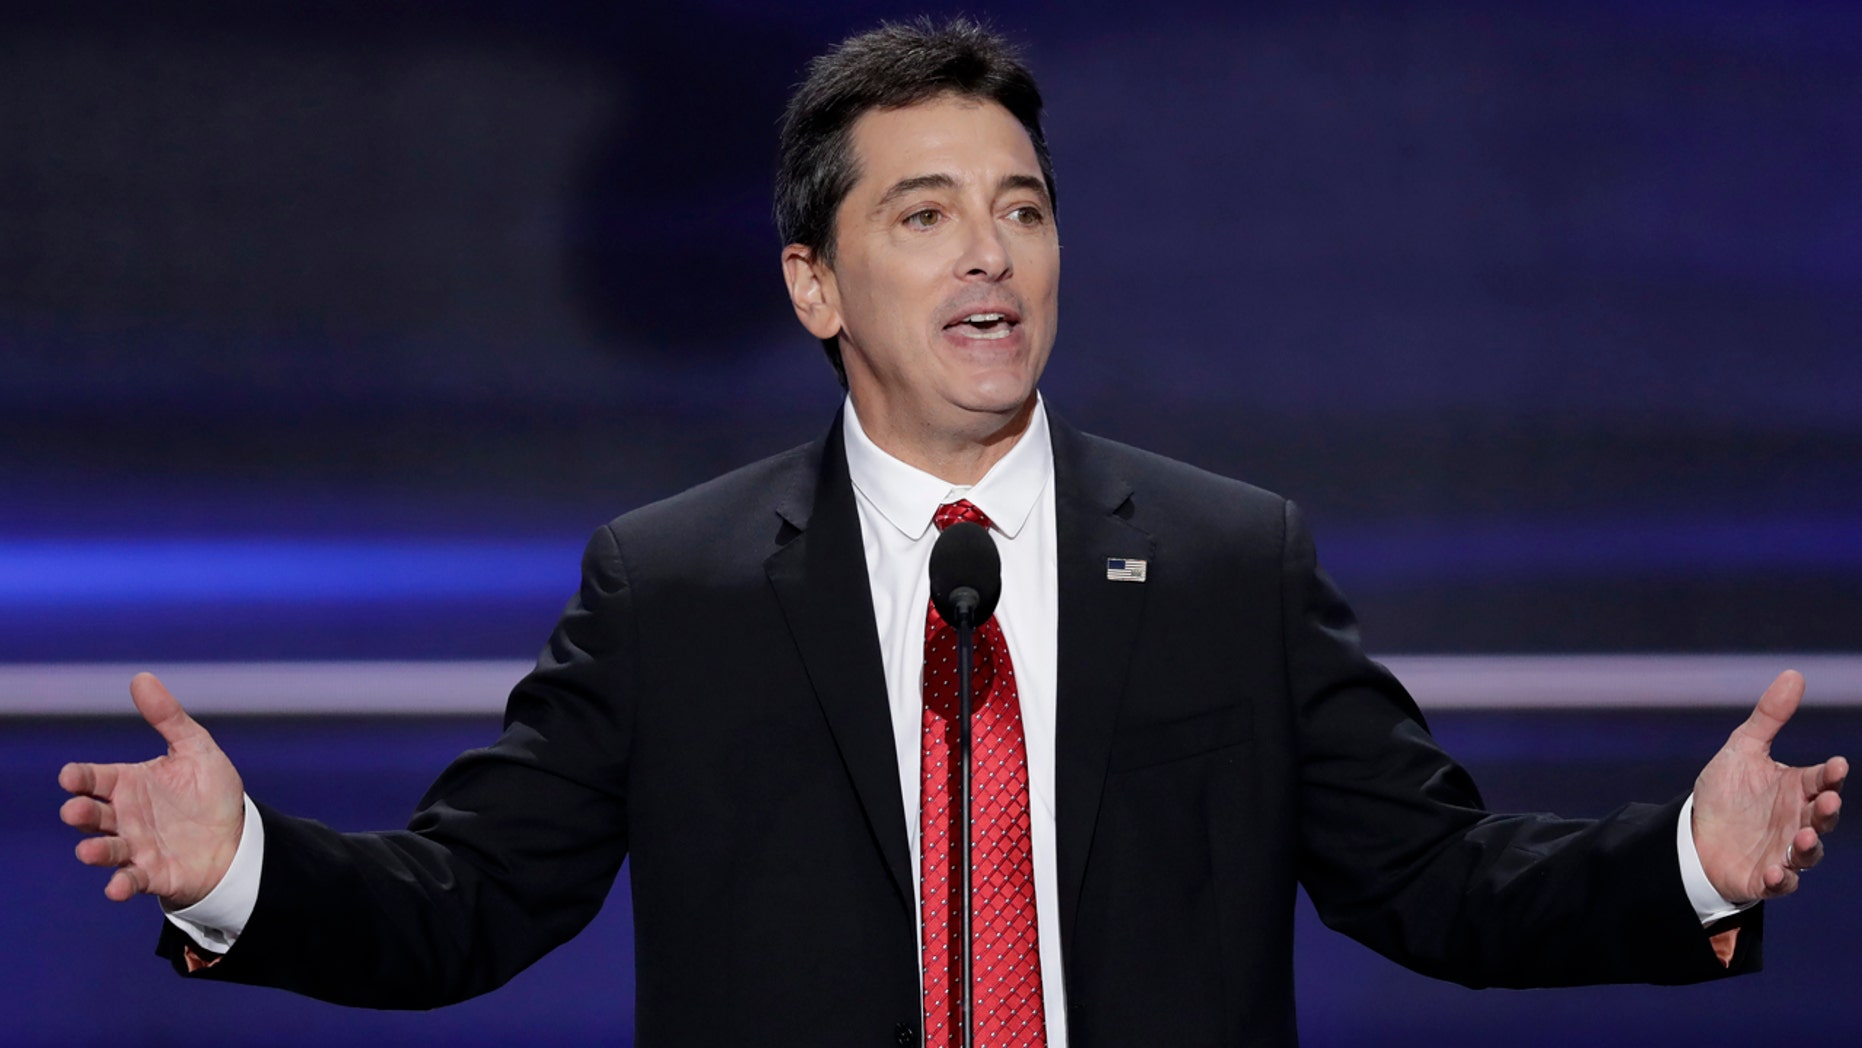 """FILE - In this  July 18, 2016, file photo, actor Scott Baio speaks during the opening day of the Republican National Convention in Cleveland. Baio wrote on Facebook April 25, 2017, that he was responding to media reports when suggested the death of his former """"Happy Days"""" co-star Erin Moran may have been due to substance abuse problems. (AP Photo/J. Scott Applewhite, File)"""